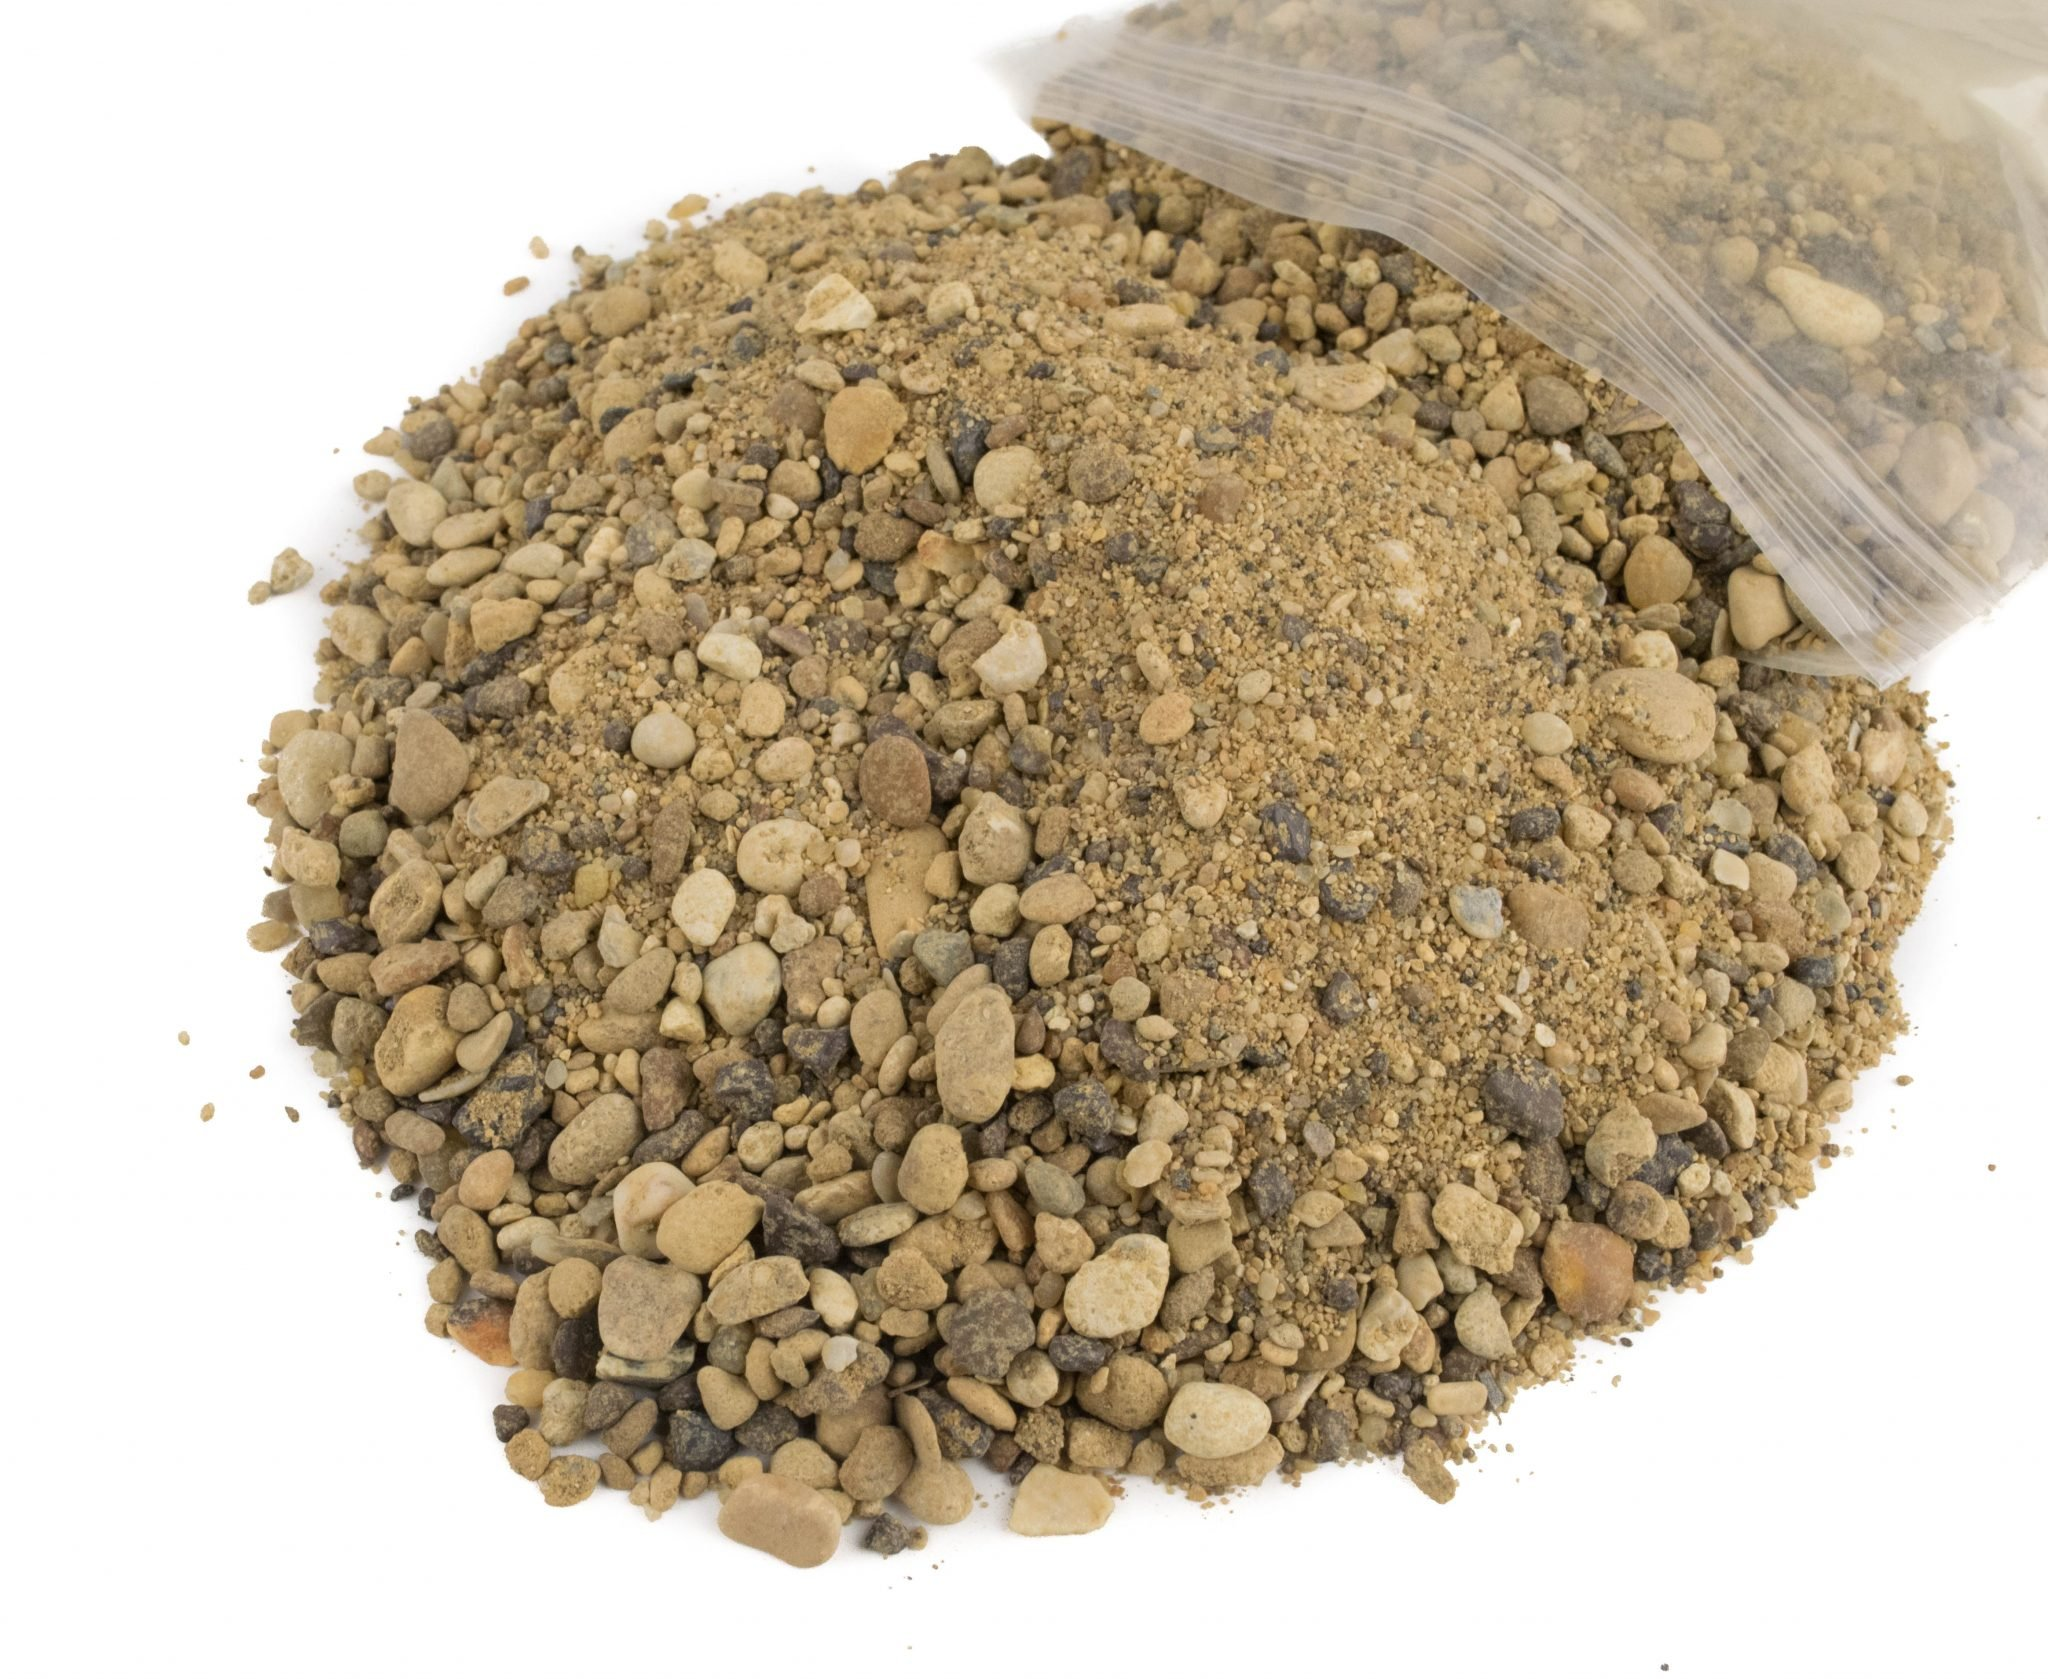 WWS Army Coarse Model Sand 200g Wargame Miniature Basing Material